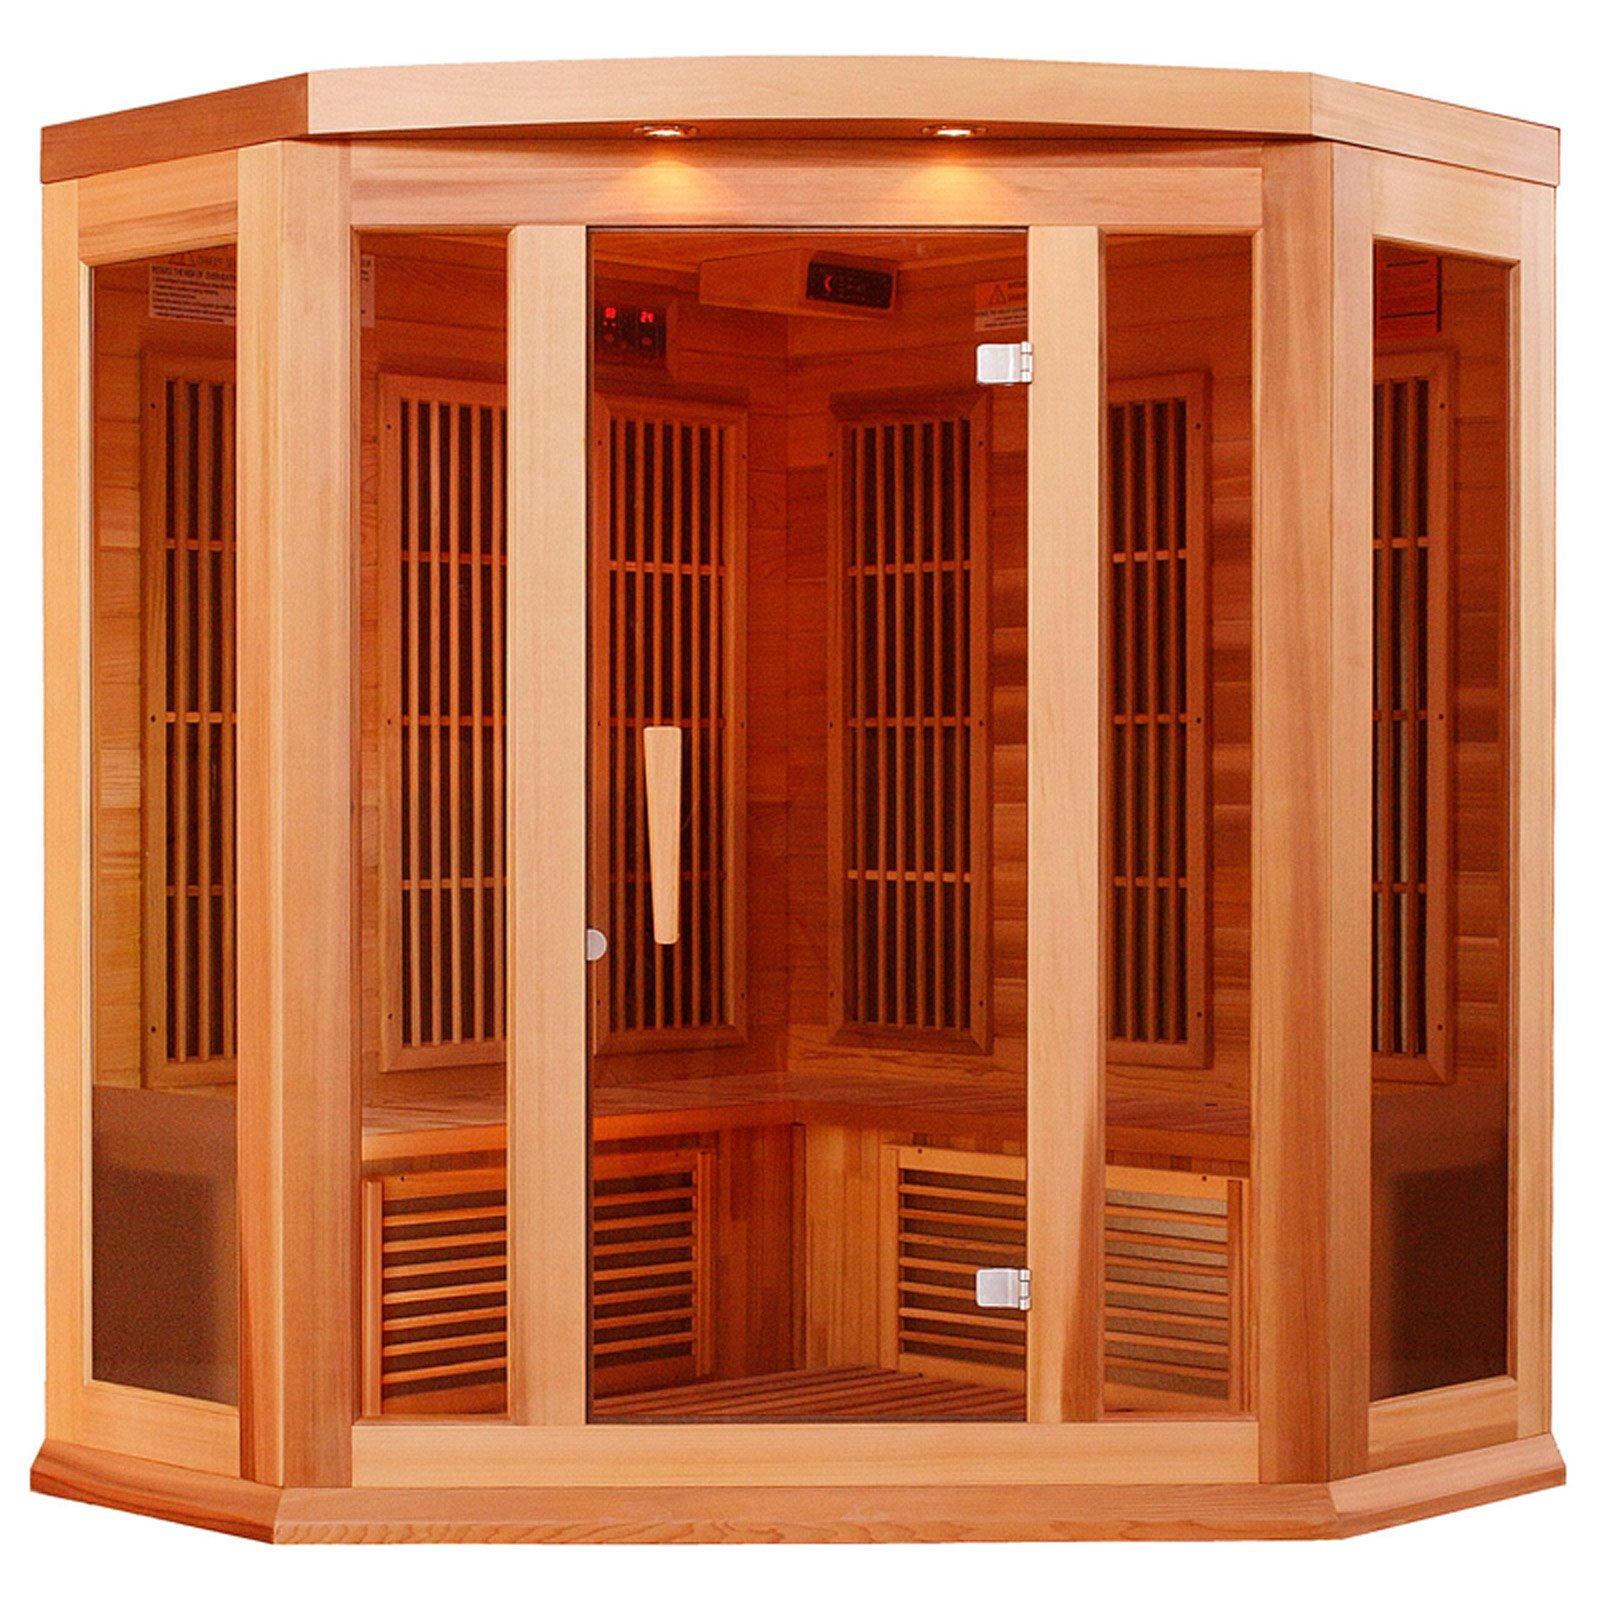 Maxxus Sauna 3 Person Corner Carbon Sauna by Maxxus Saunas